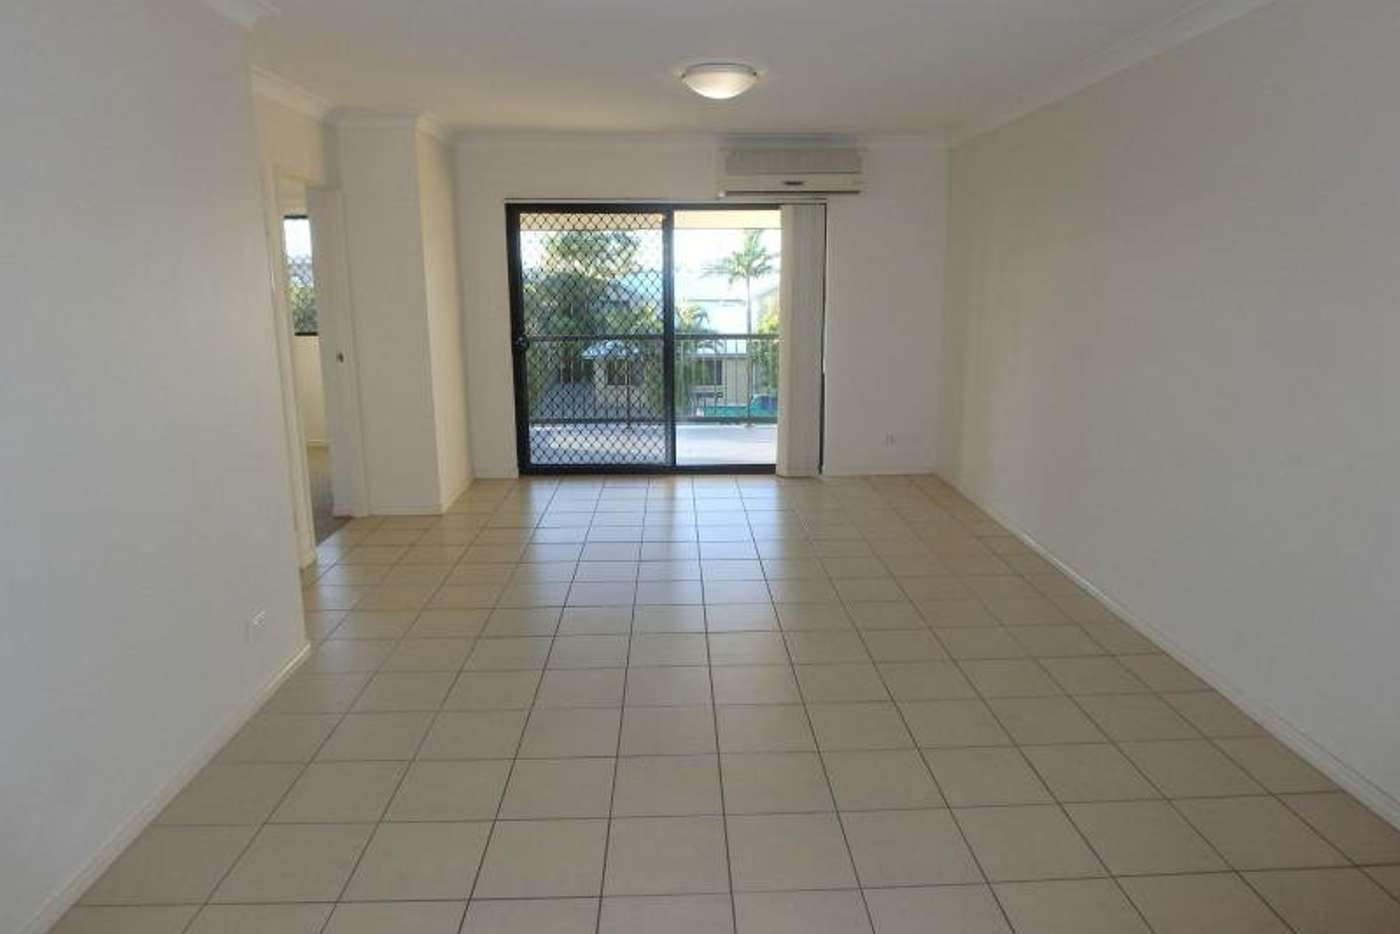 Main view of Homely unit listing, 4/56 Wallace Street, Chermside QLD 4032